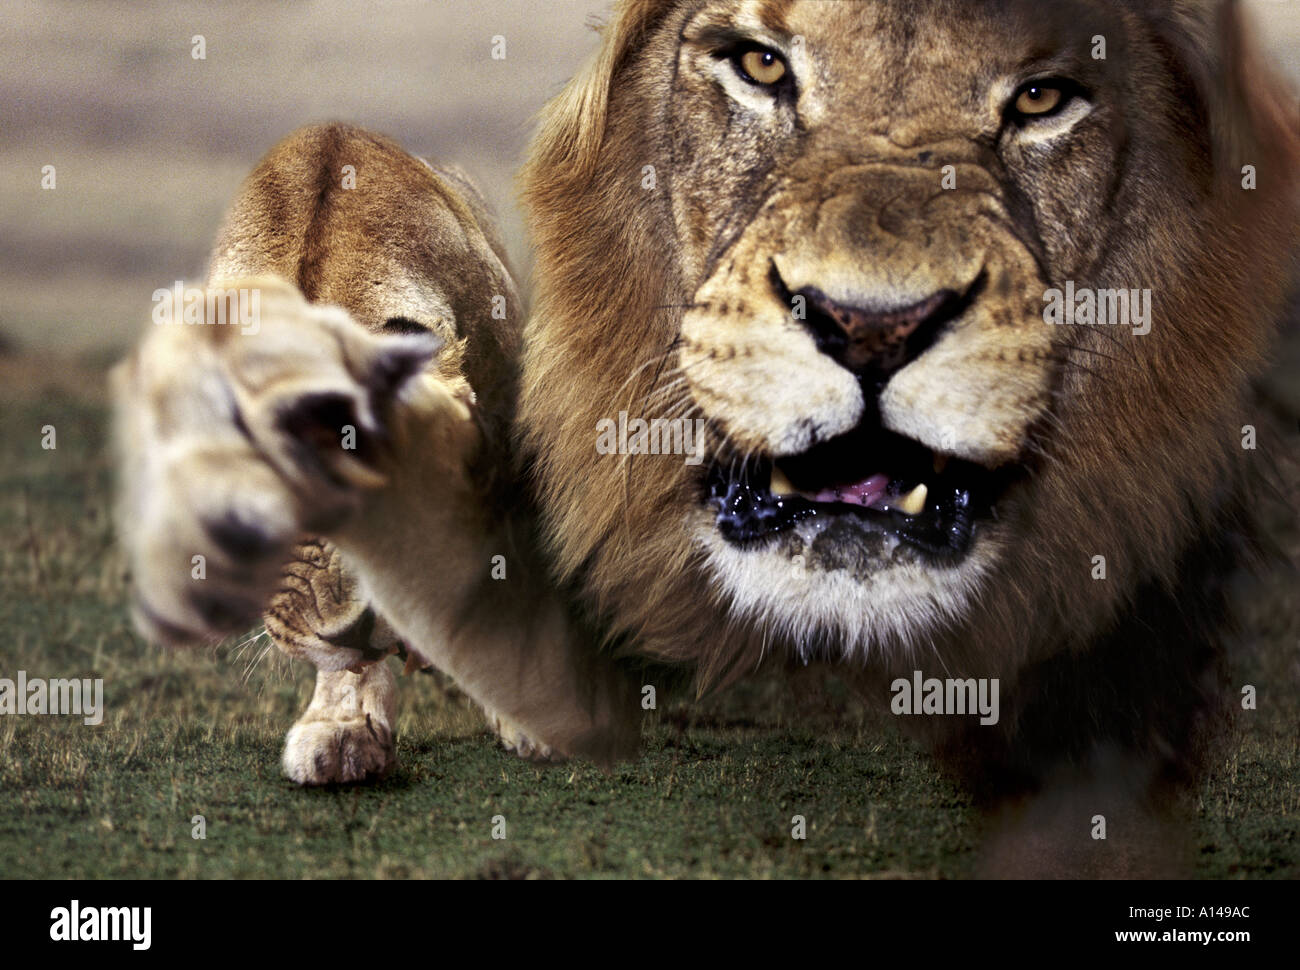 Lion snarling South Africa - Stock Image